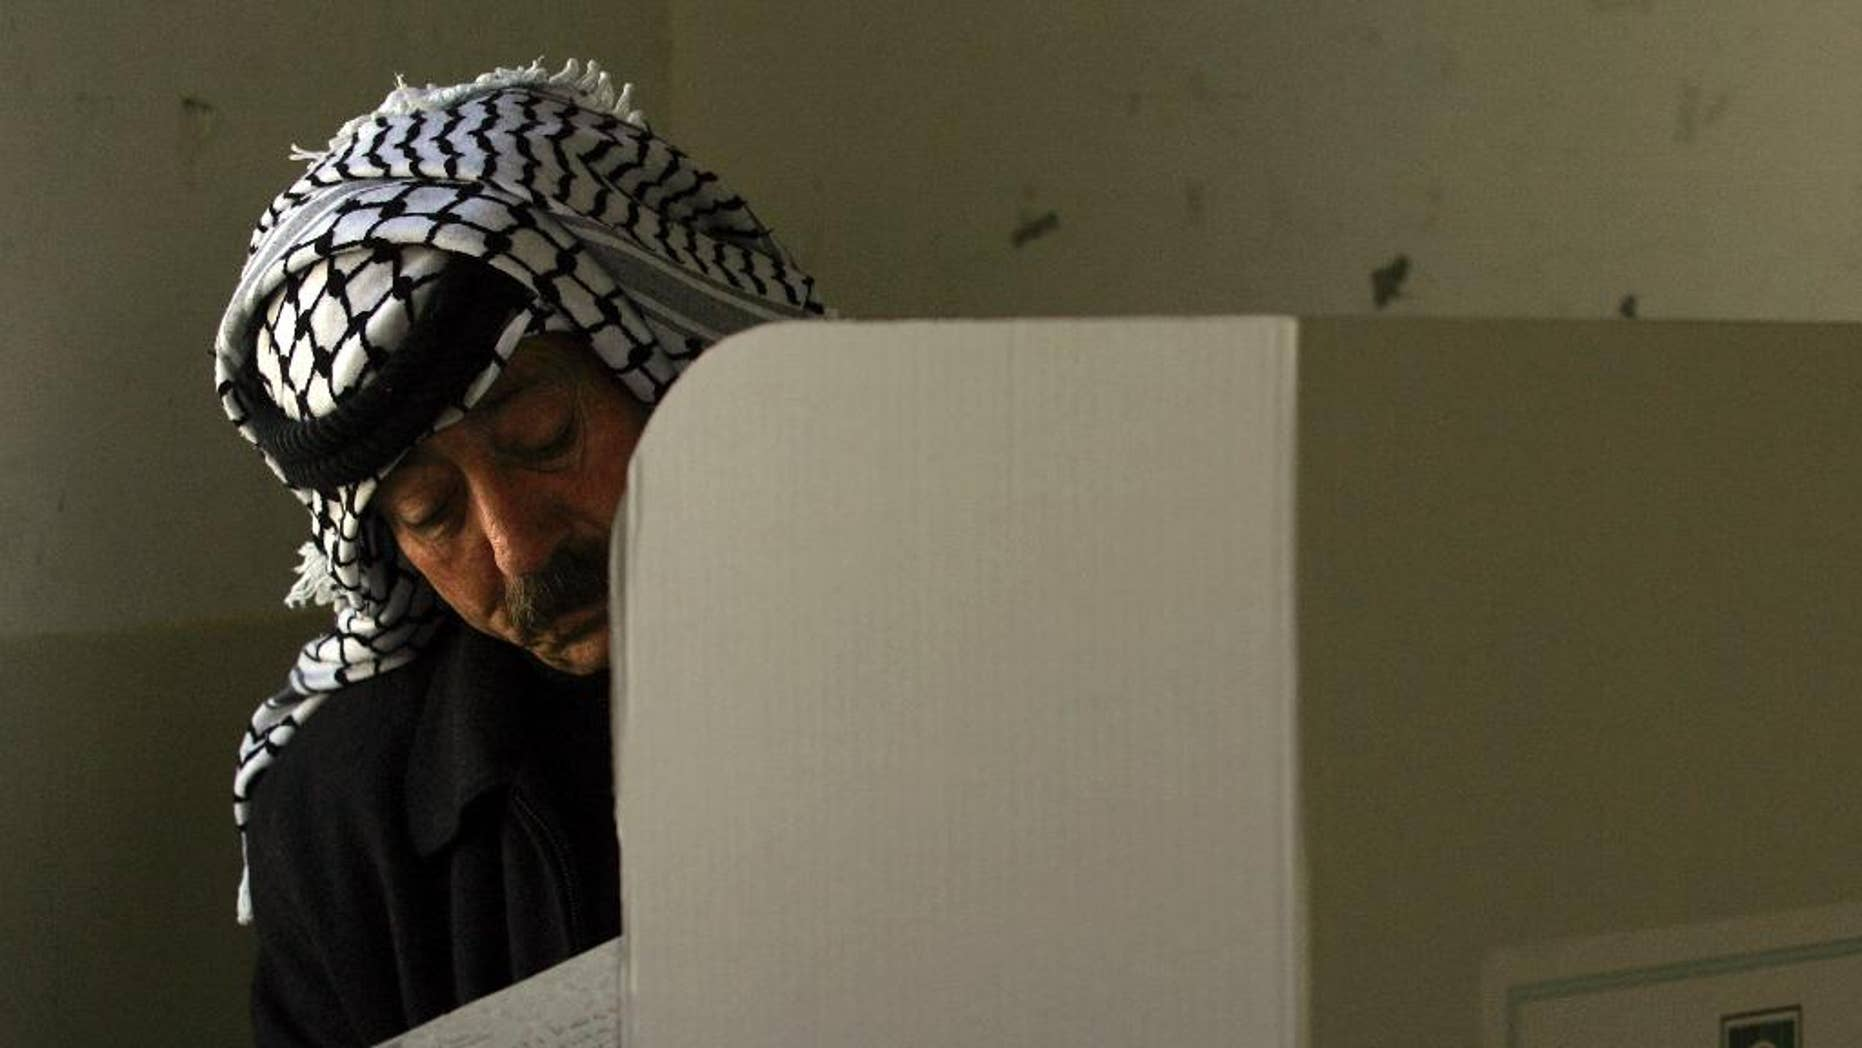 FILE - In this Jan. 22, 2006 file photo, a Palestinian police officer fills in his ballot before casting it in parliamentary elections in the West Bank city of Nablus. The Palestinian high court on Monday, Oct. 3, 2016 ruled upcoming municipal elections will be held in the West Bank only, excluding the Hamas-controlled Gaza Strip, in a move that suspends the first political contest in a decade between the rival Fatah and Hamas in both territories. (AP Photo/Emilio Morenatti, File)